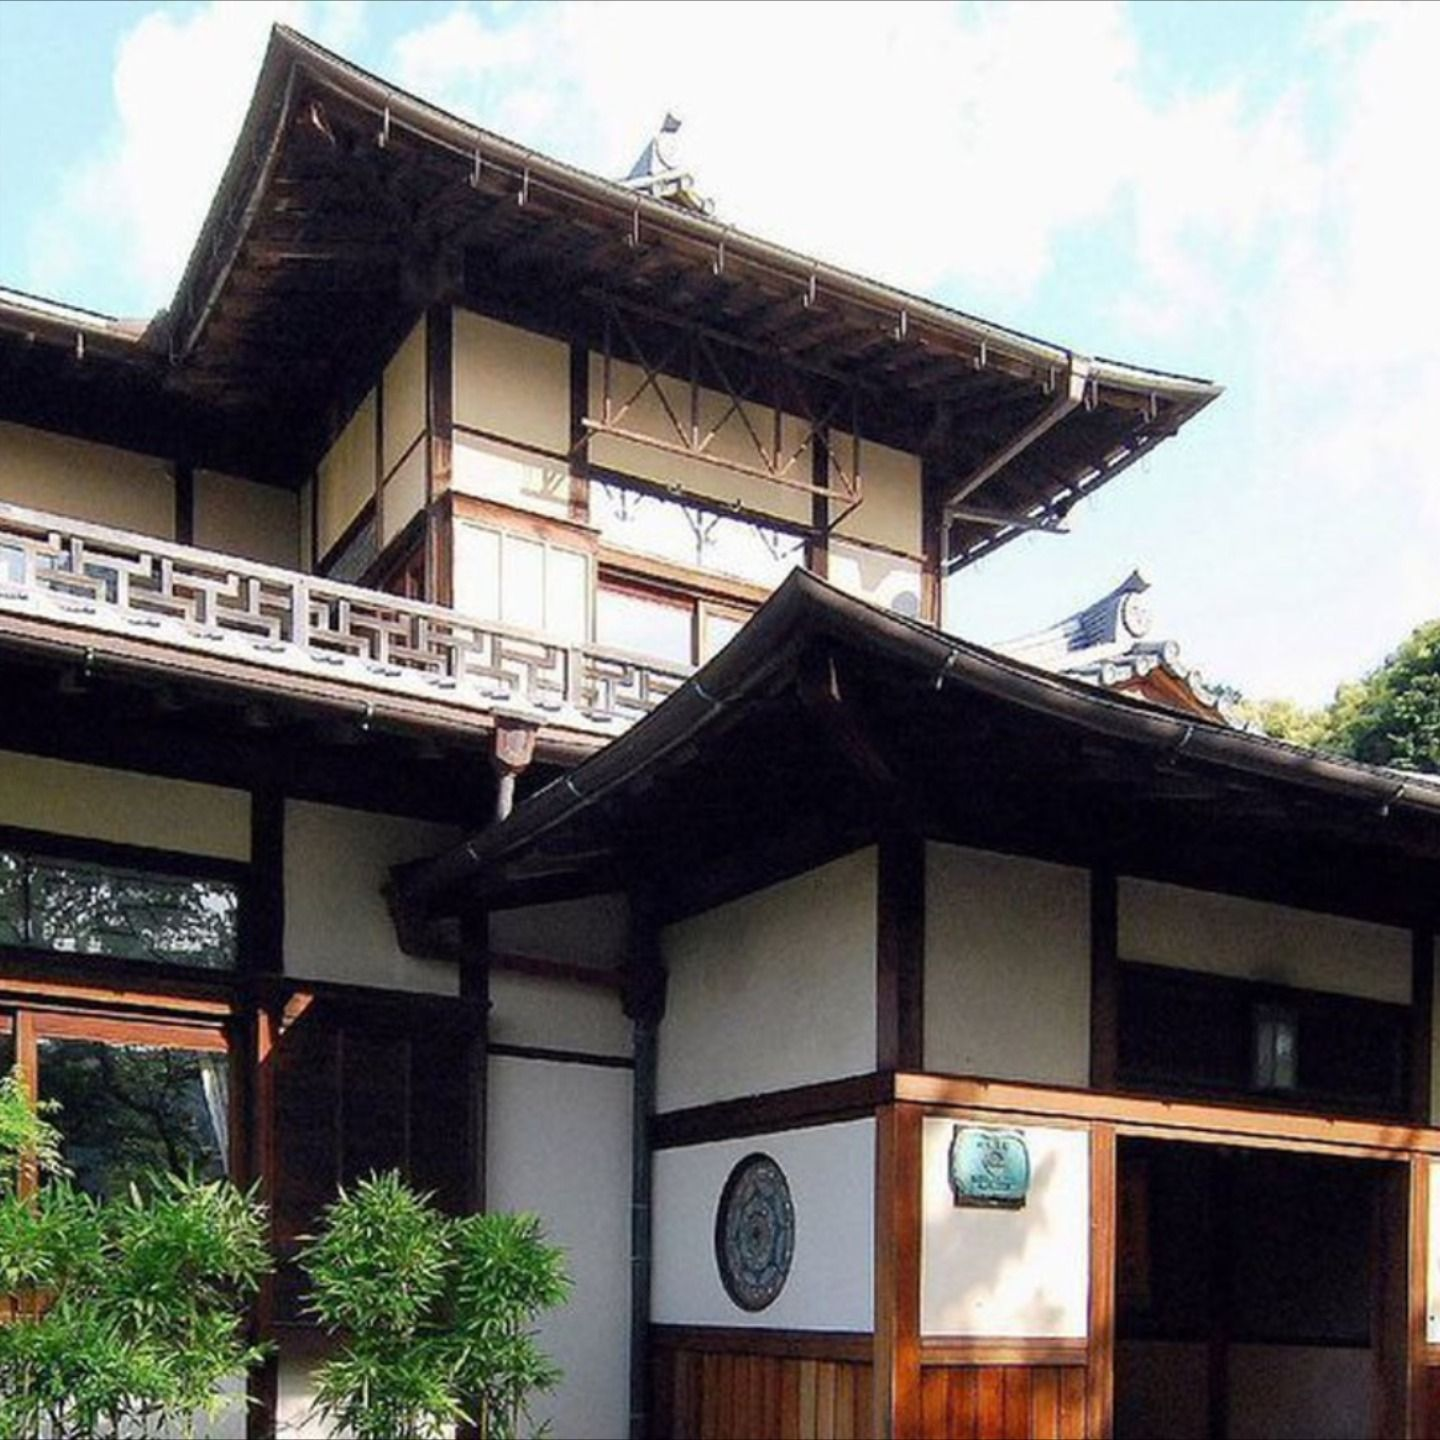 Few things encapsulate the Japanese cultural experience as much as staying in a #ryokan does. Click to explore eight of the greats in #kyoto  #culturetrip #forcurioustravellers #explorekyoto #explorejapan #japaneseculture #kyotoplacestostay #kyotoryokan